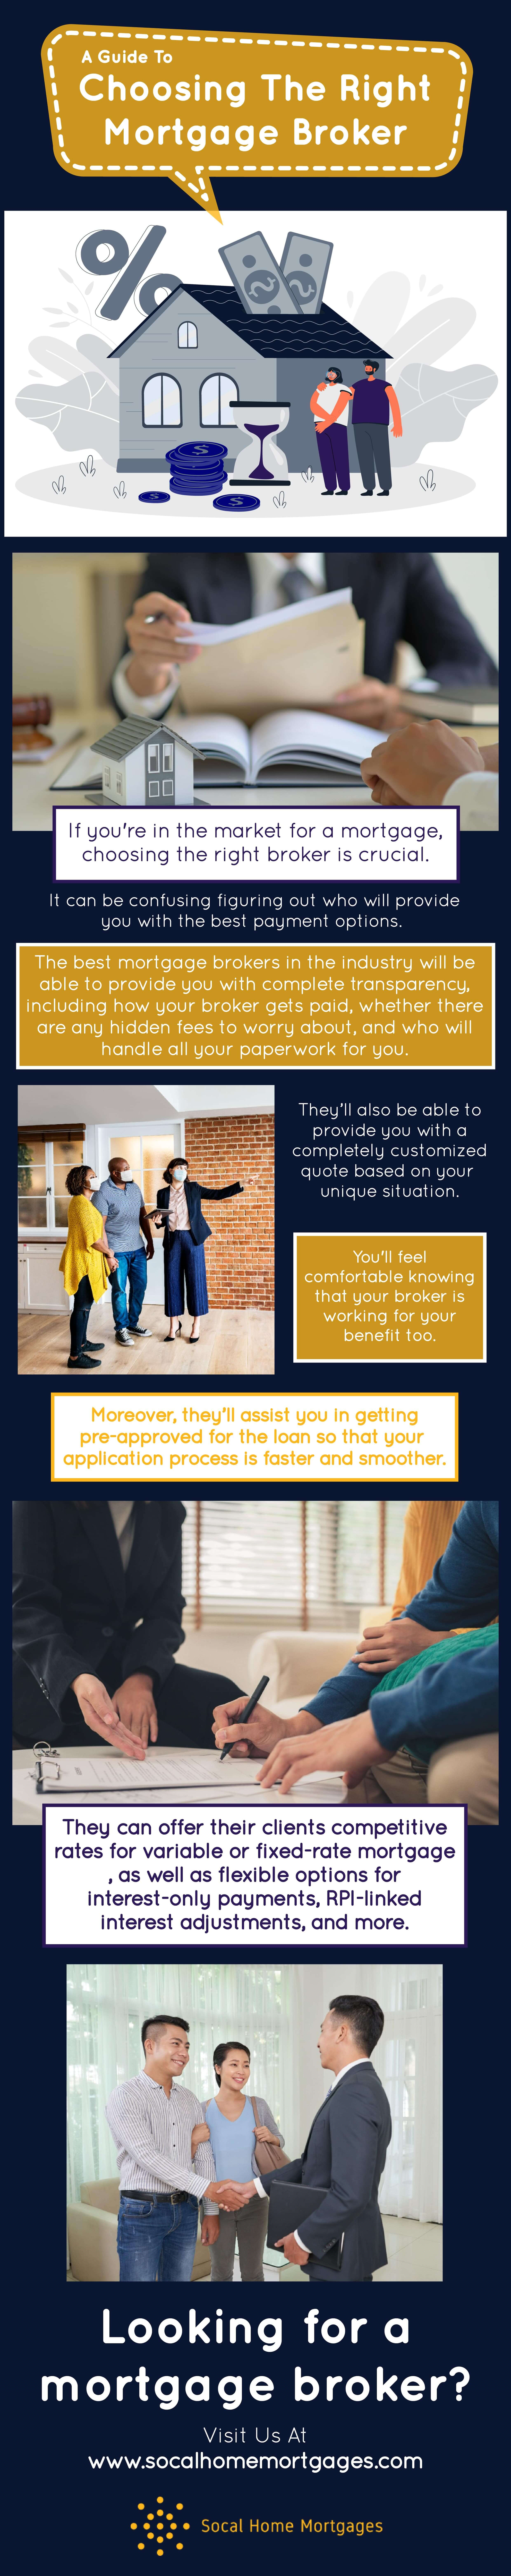 A Guide to Choosing The Right Mortgage Broker